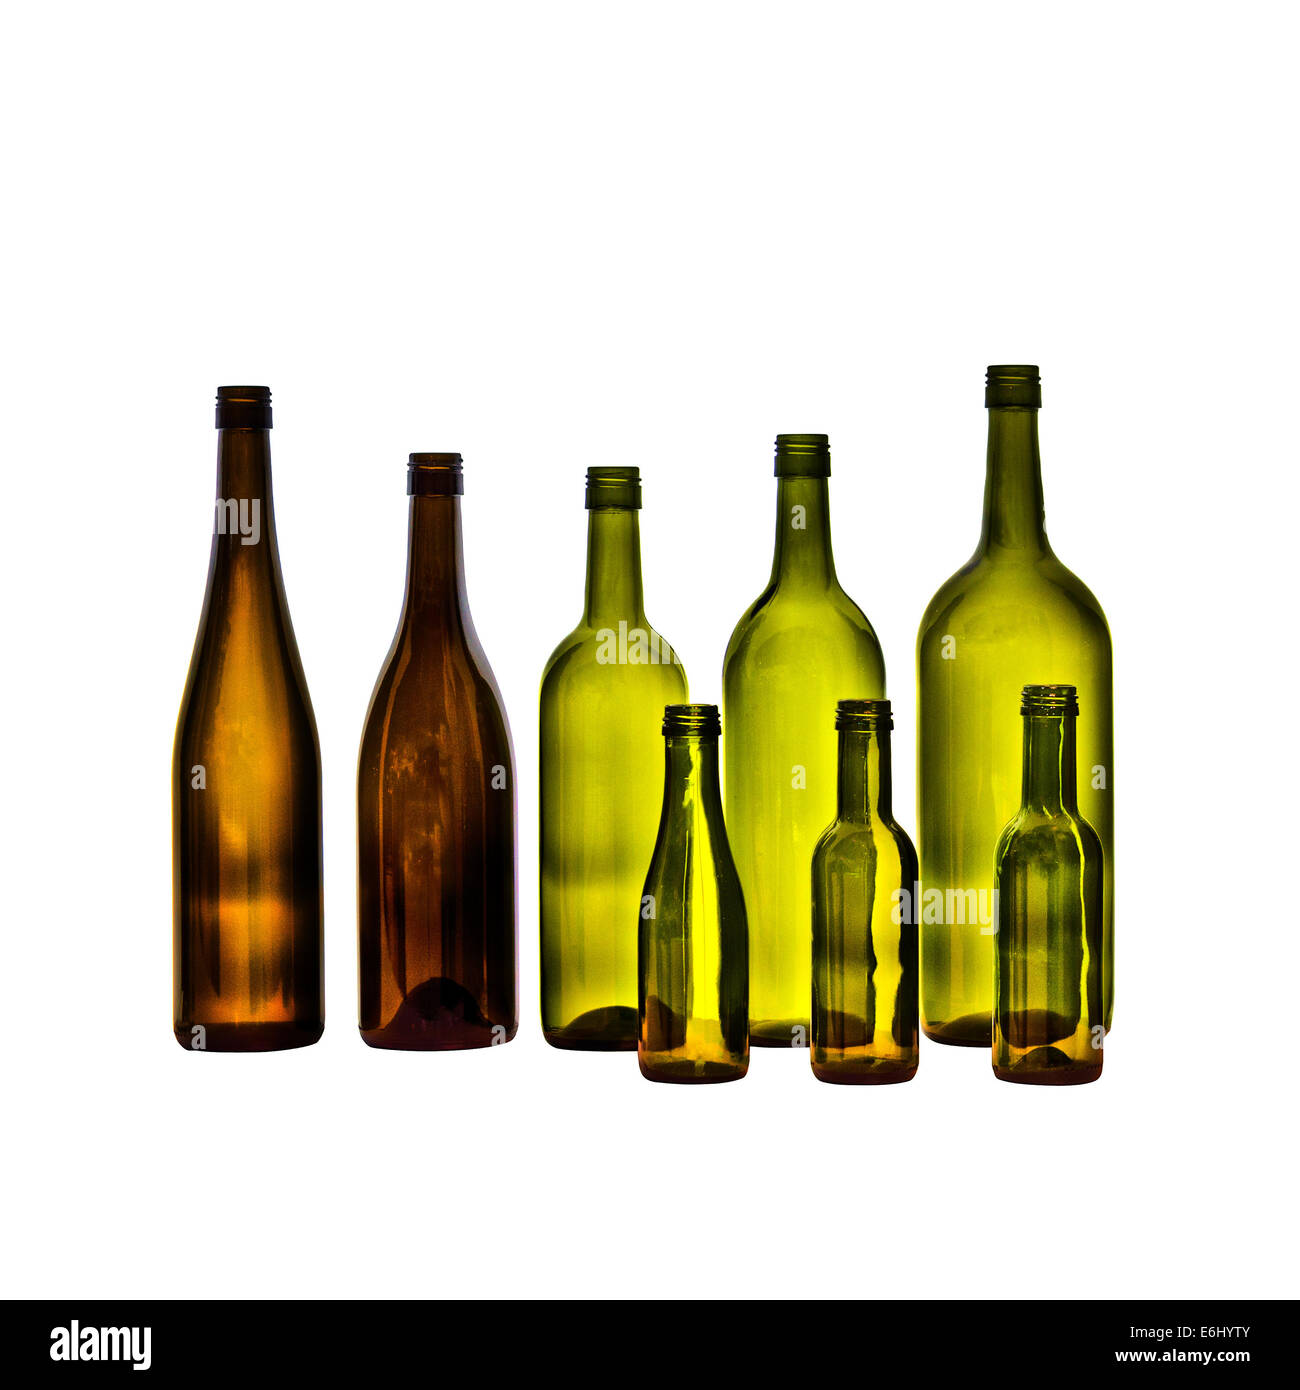 Empty glass wine bottles on white background. Bottles in various shapes and sizes. - Stock Image